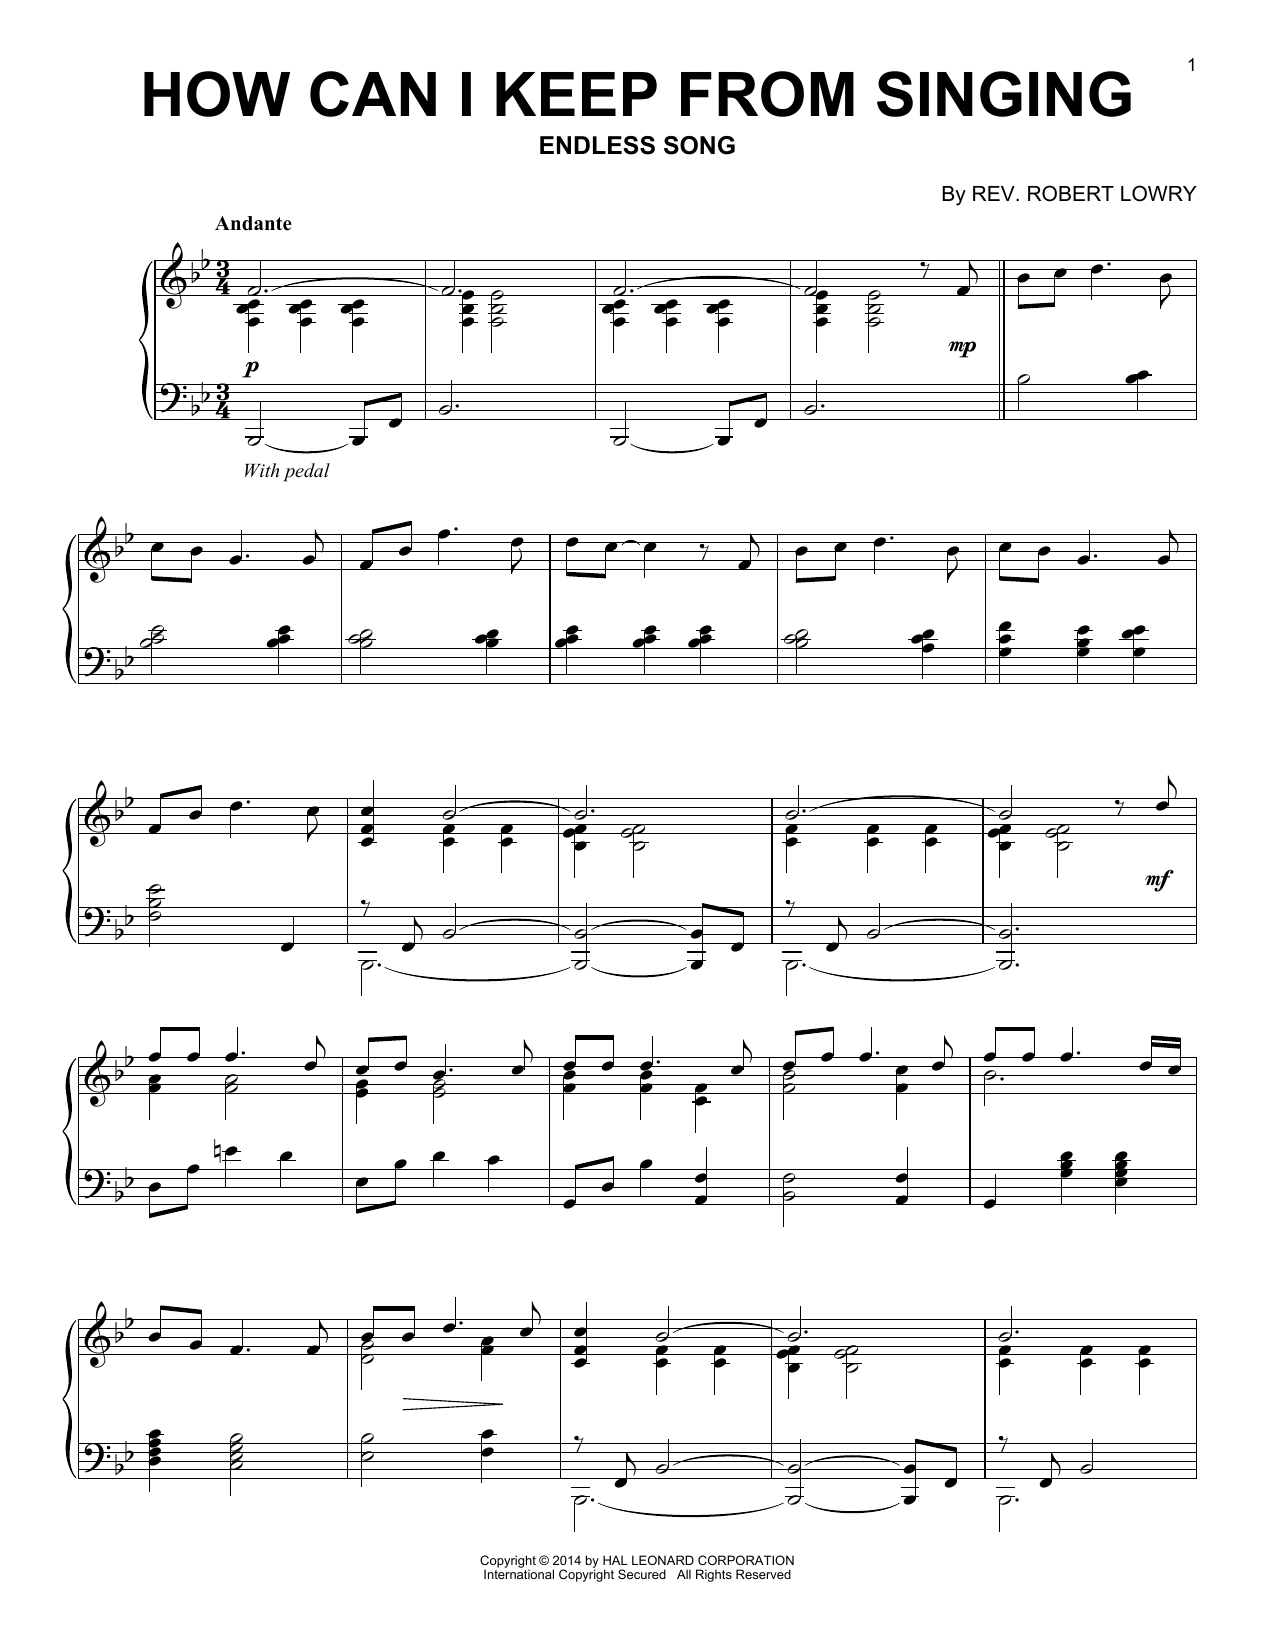 Rev. Robert Lowry How Can I Keep From Singing sheet music notes and chords